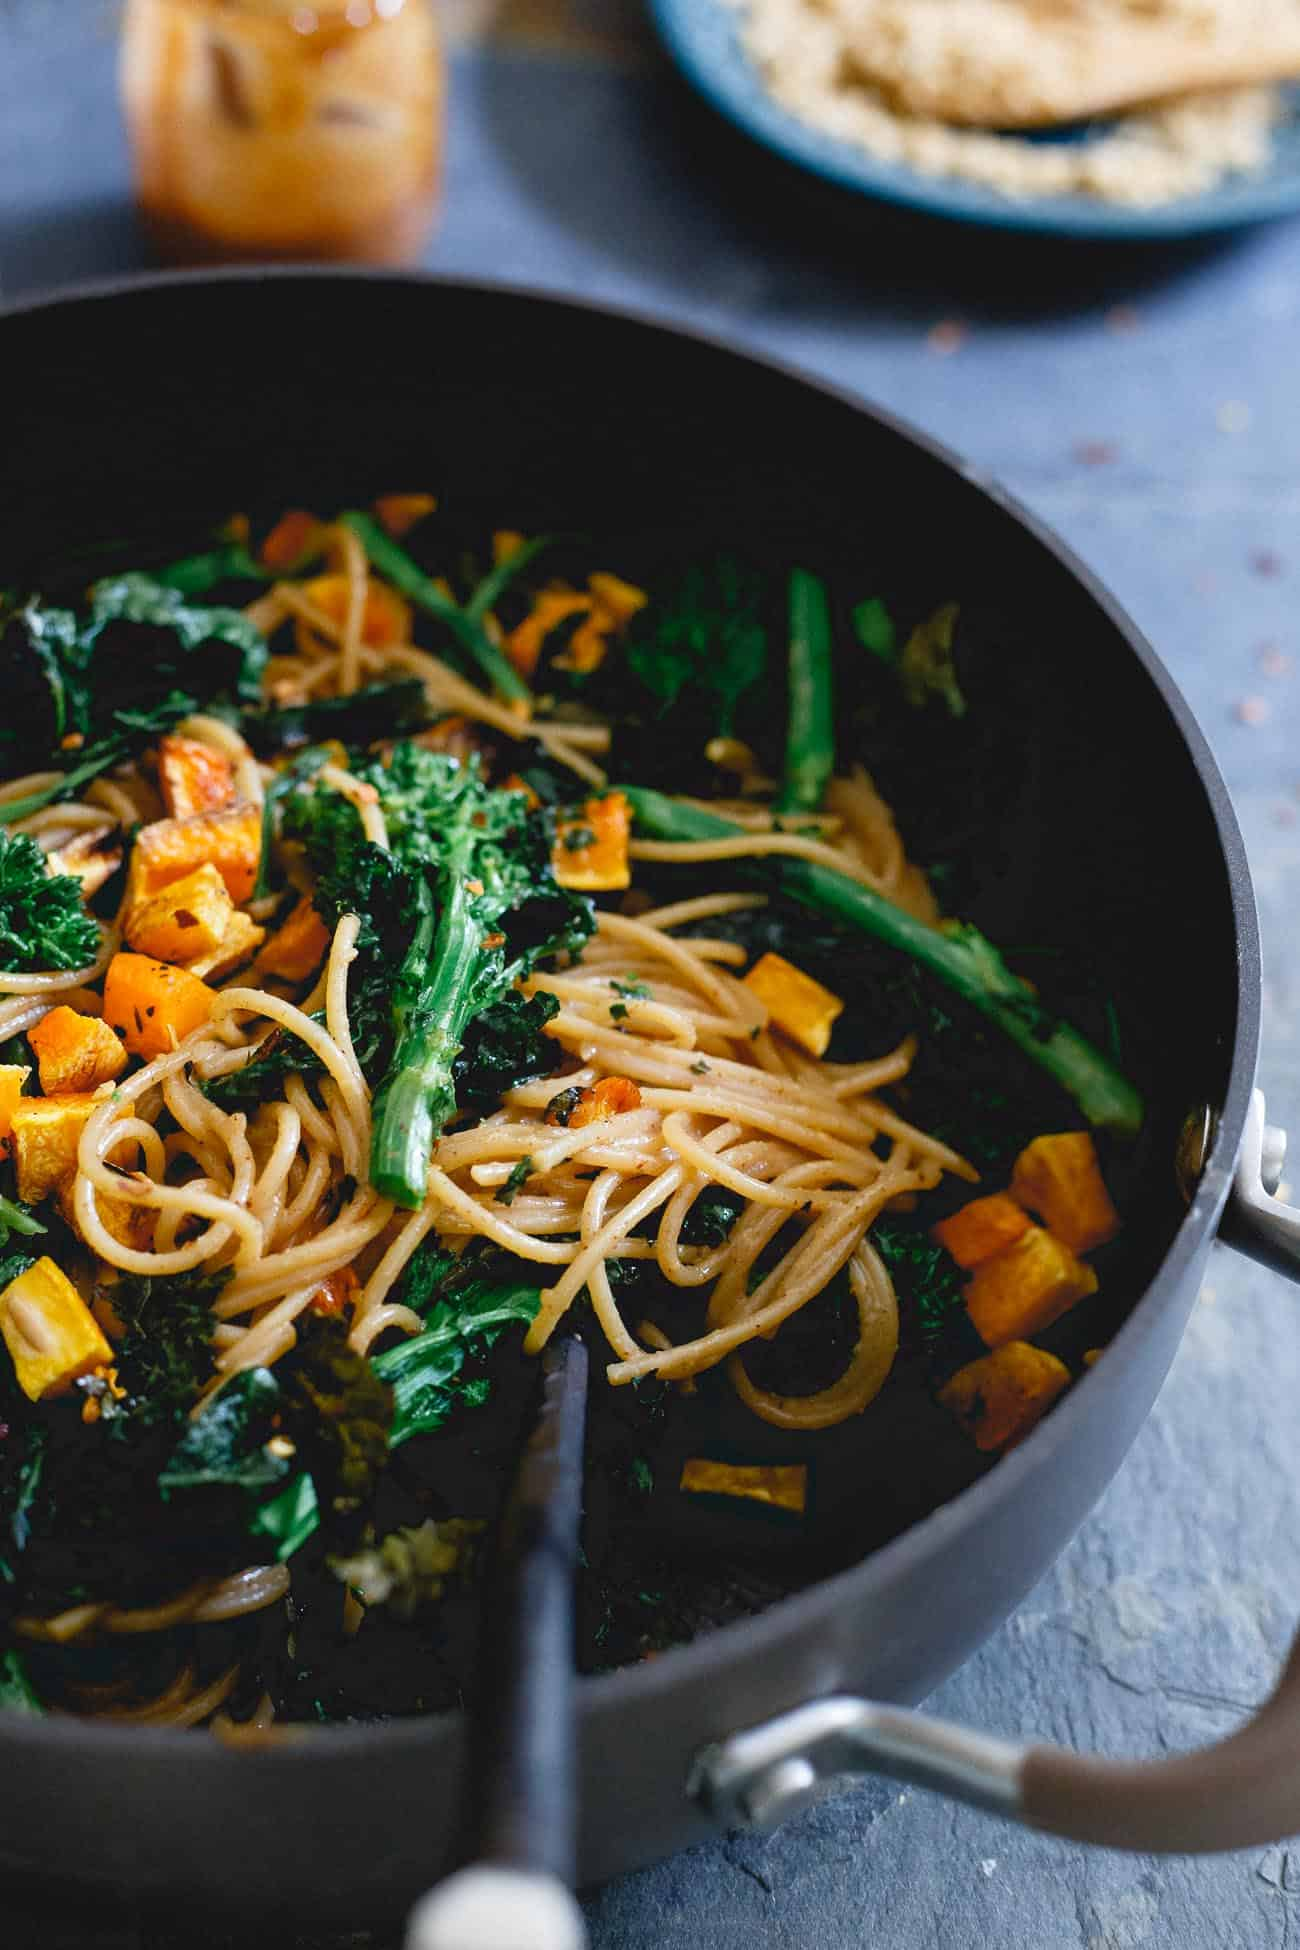 A creamy almond butter sauce is tossed into this fall pasta for an Asian flair with all the coziness of a fall recipe.